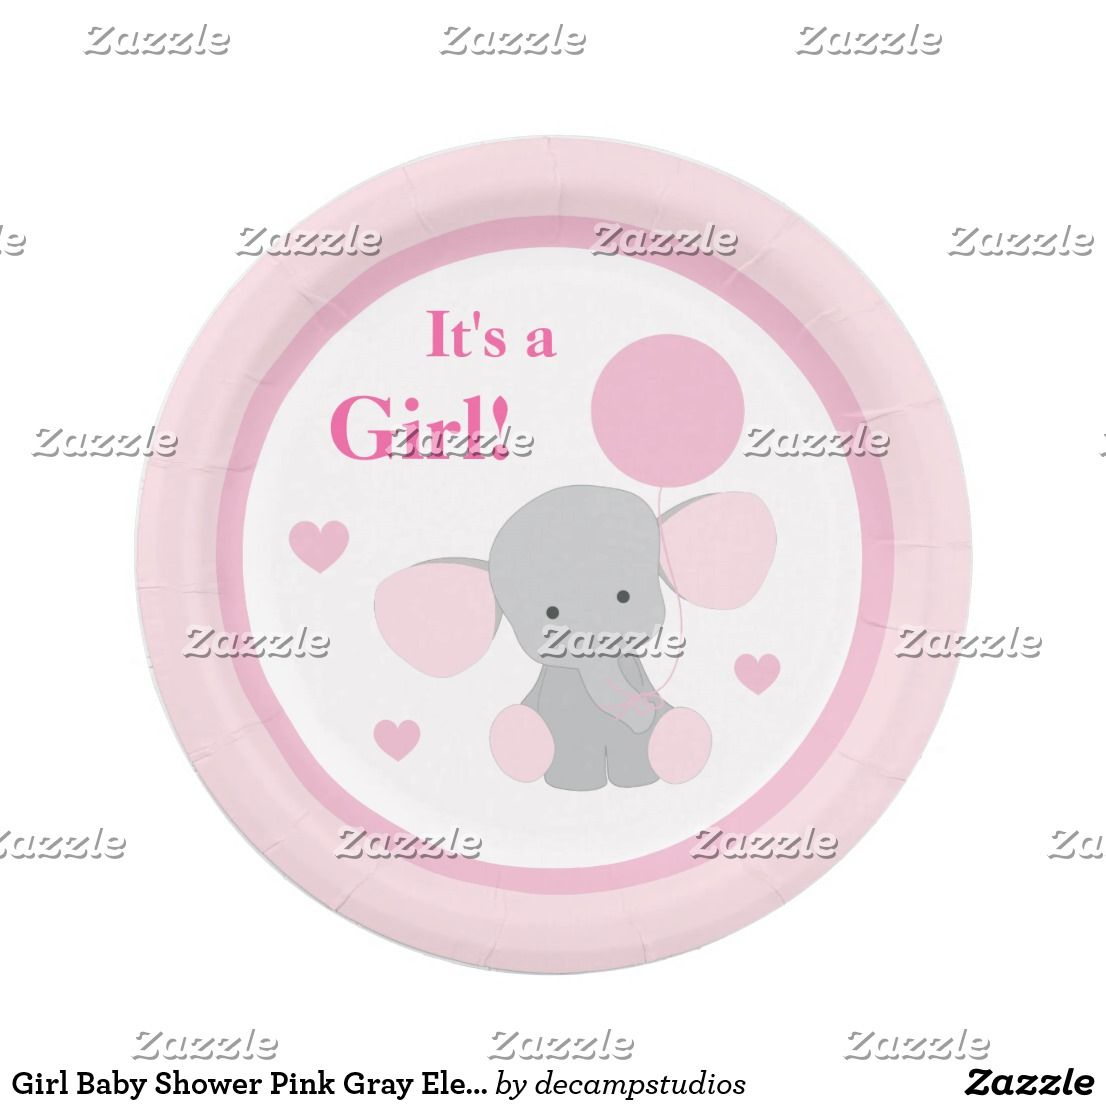 Girl Baby Shower Pink Gray Elephant Sprinkle Party Paper Plate  sc 1 st  Pinterest & Girl Baby Shower Pink Gray Elephant Sprinkle Party Paper Plate ...